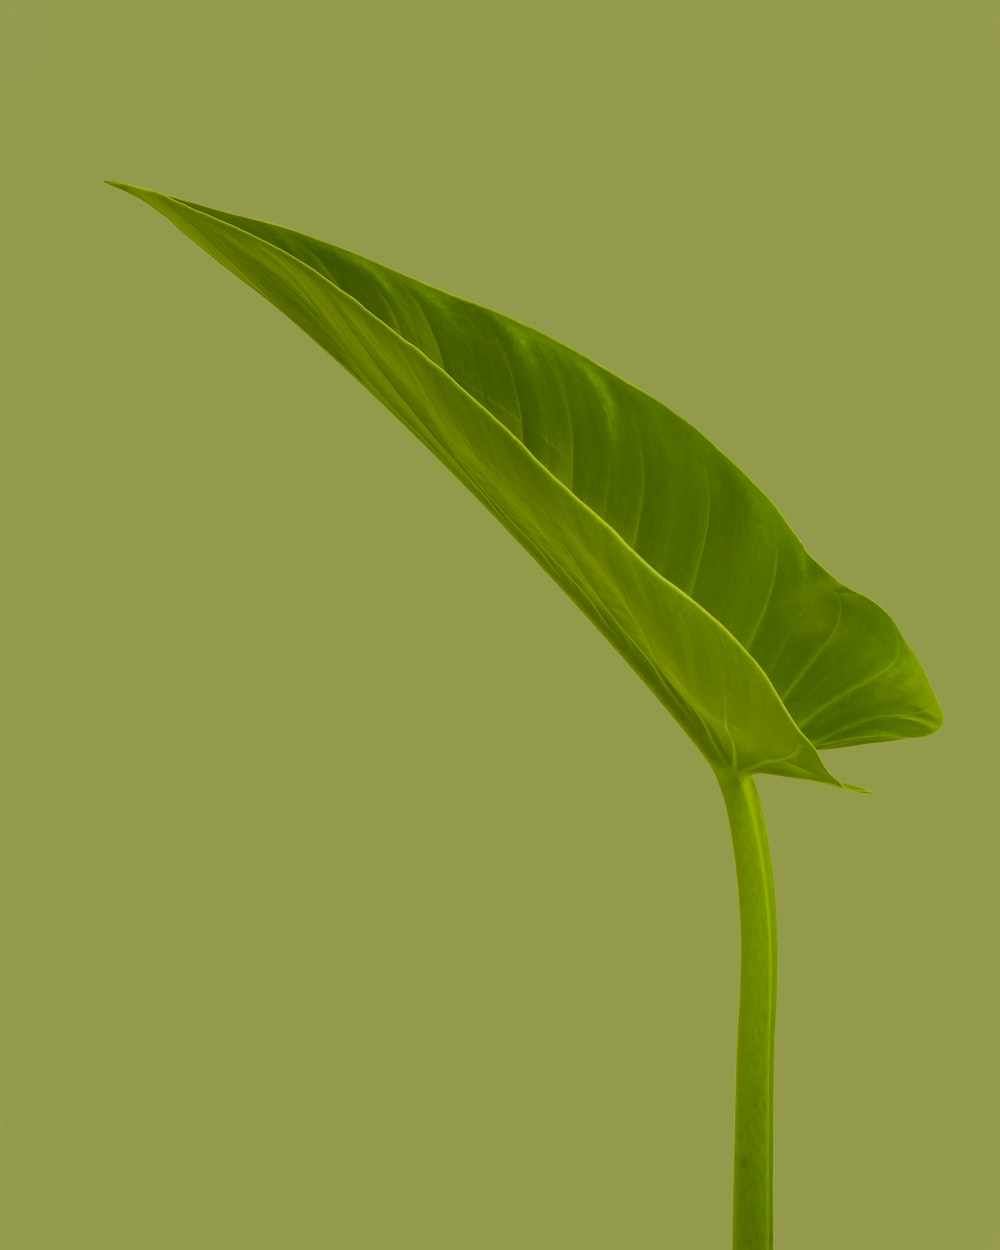 green leaf with green background